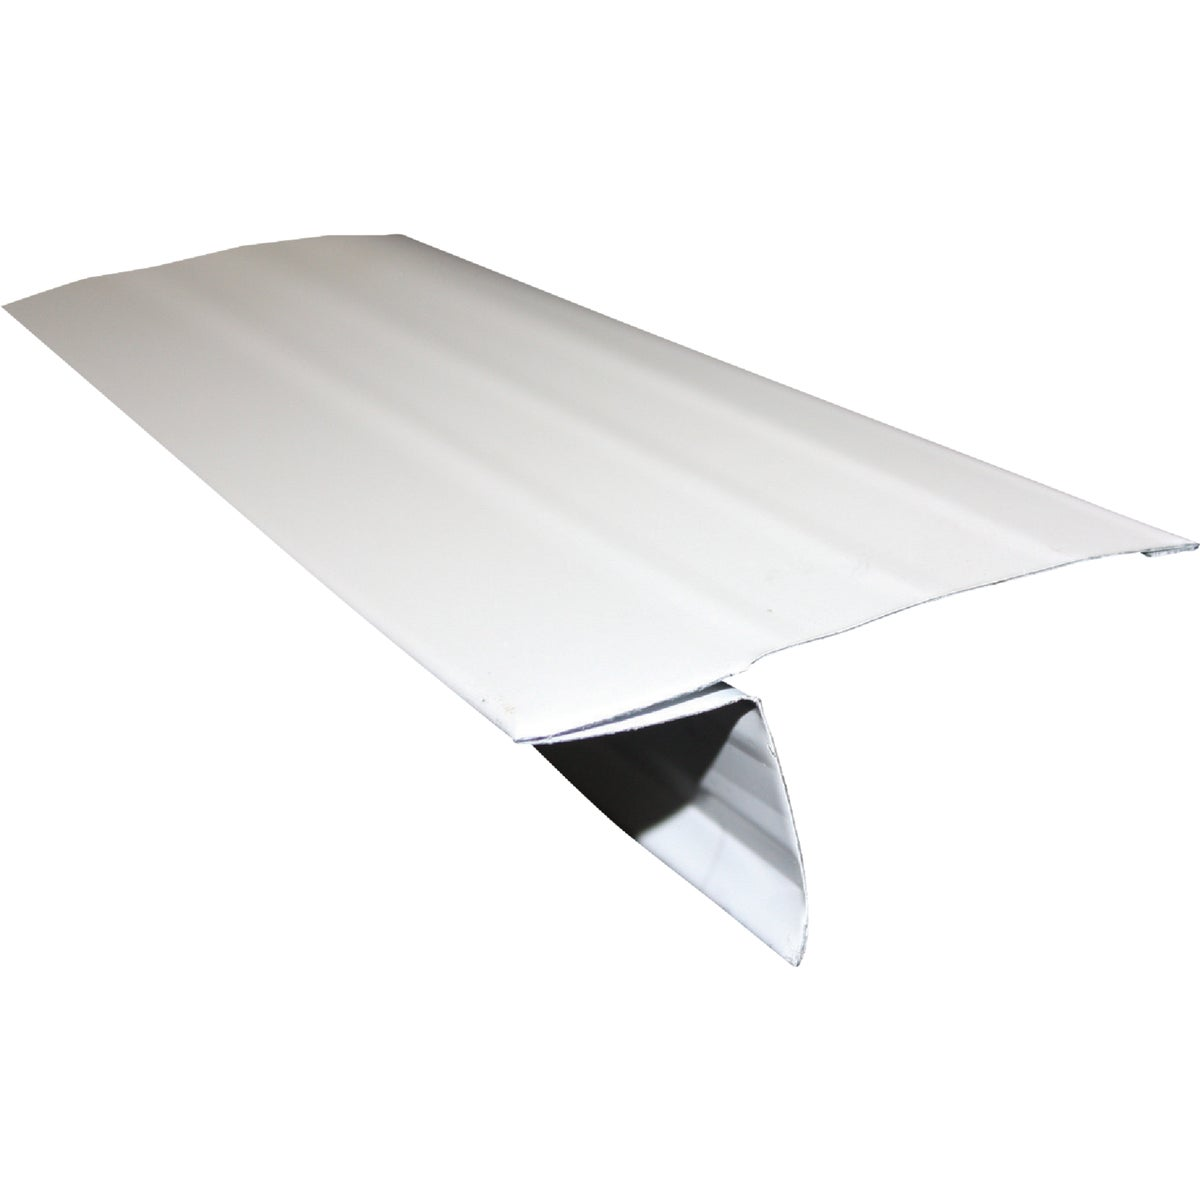 "5""STYLE D GALV ROOF EDGE"